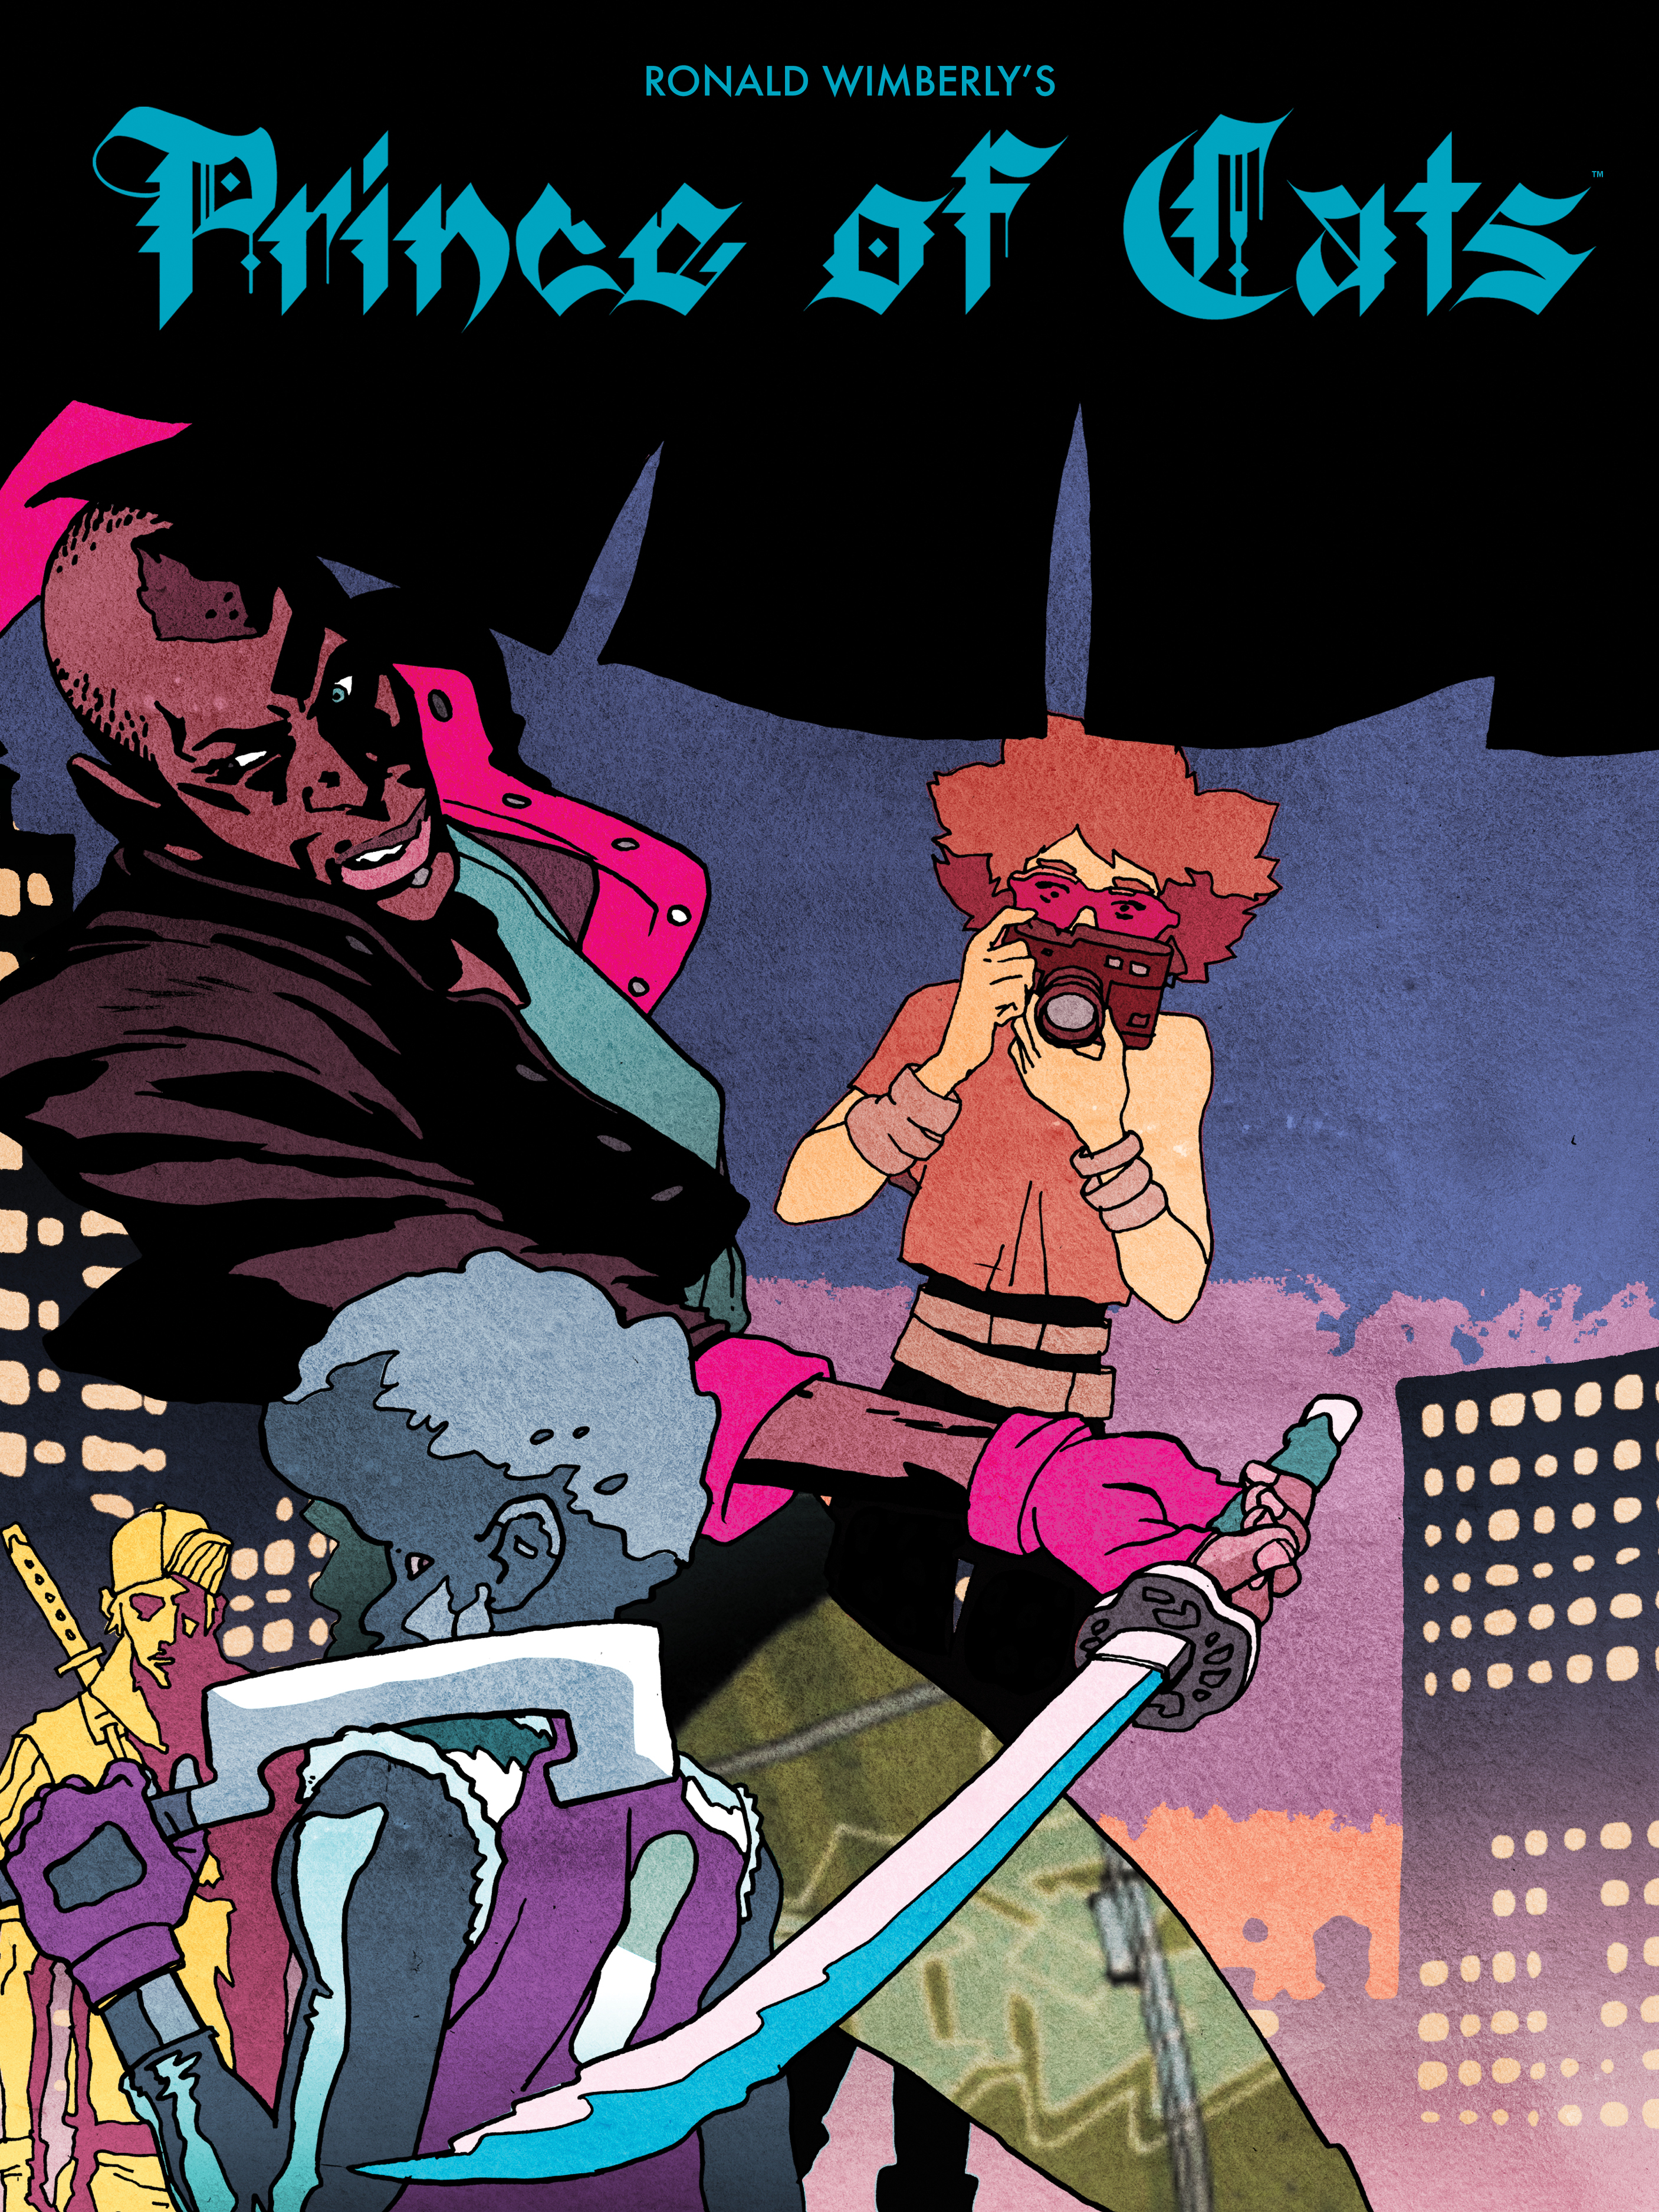 The 100 Best Comics of the Decade: Prince of Cats